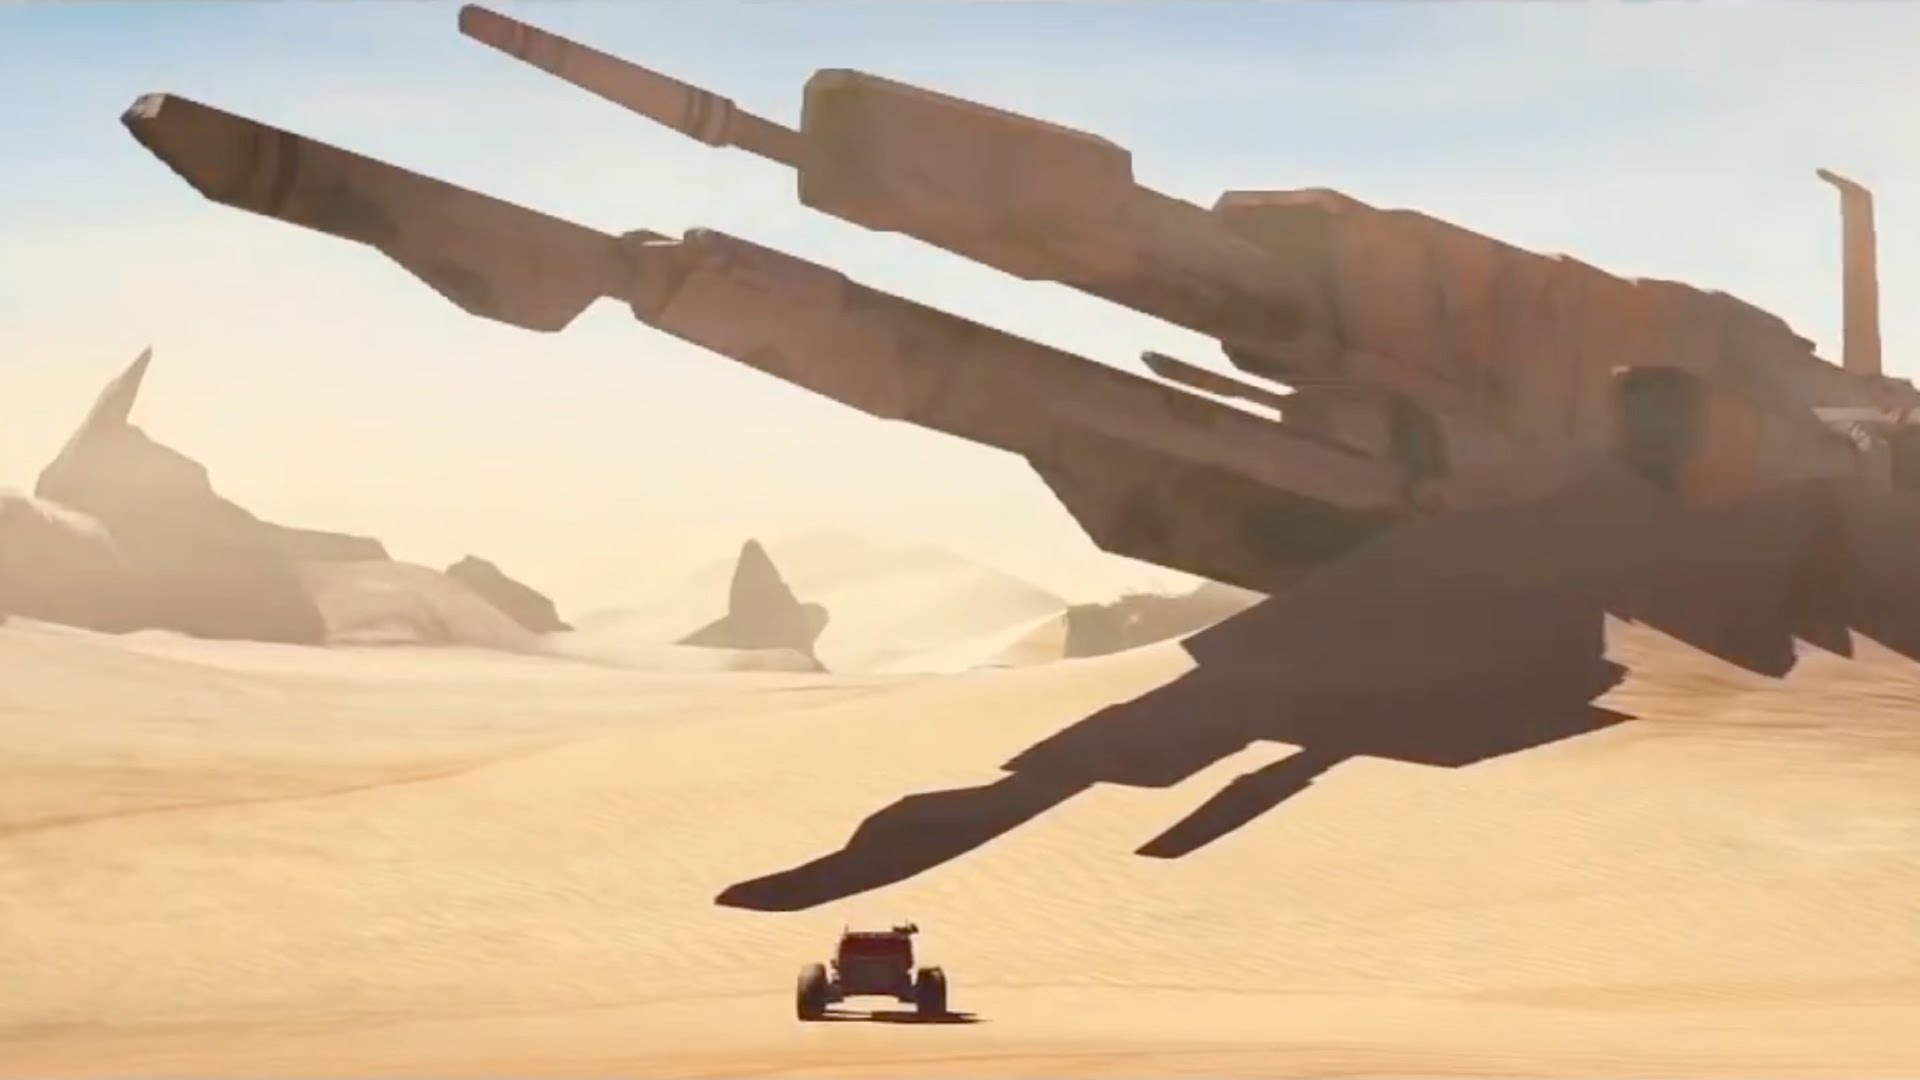 Homeworld: Deserts of Kharak Download